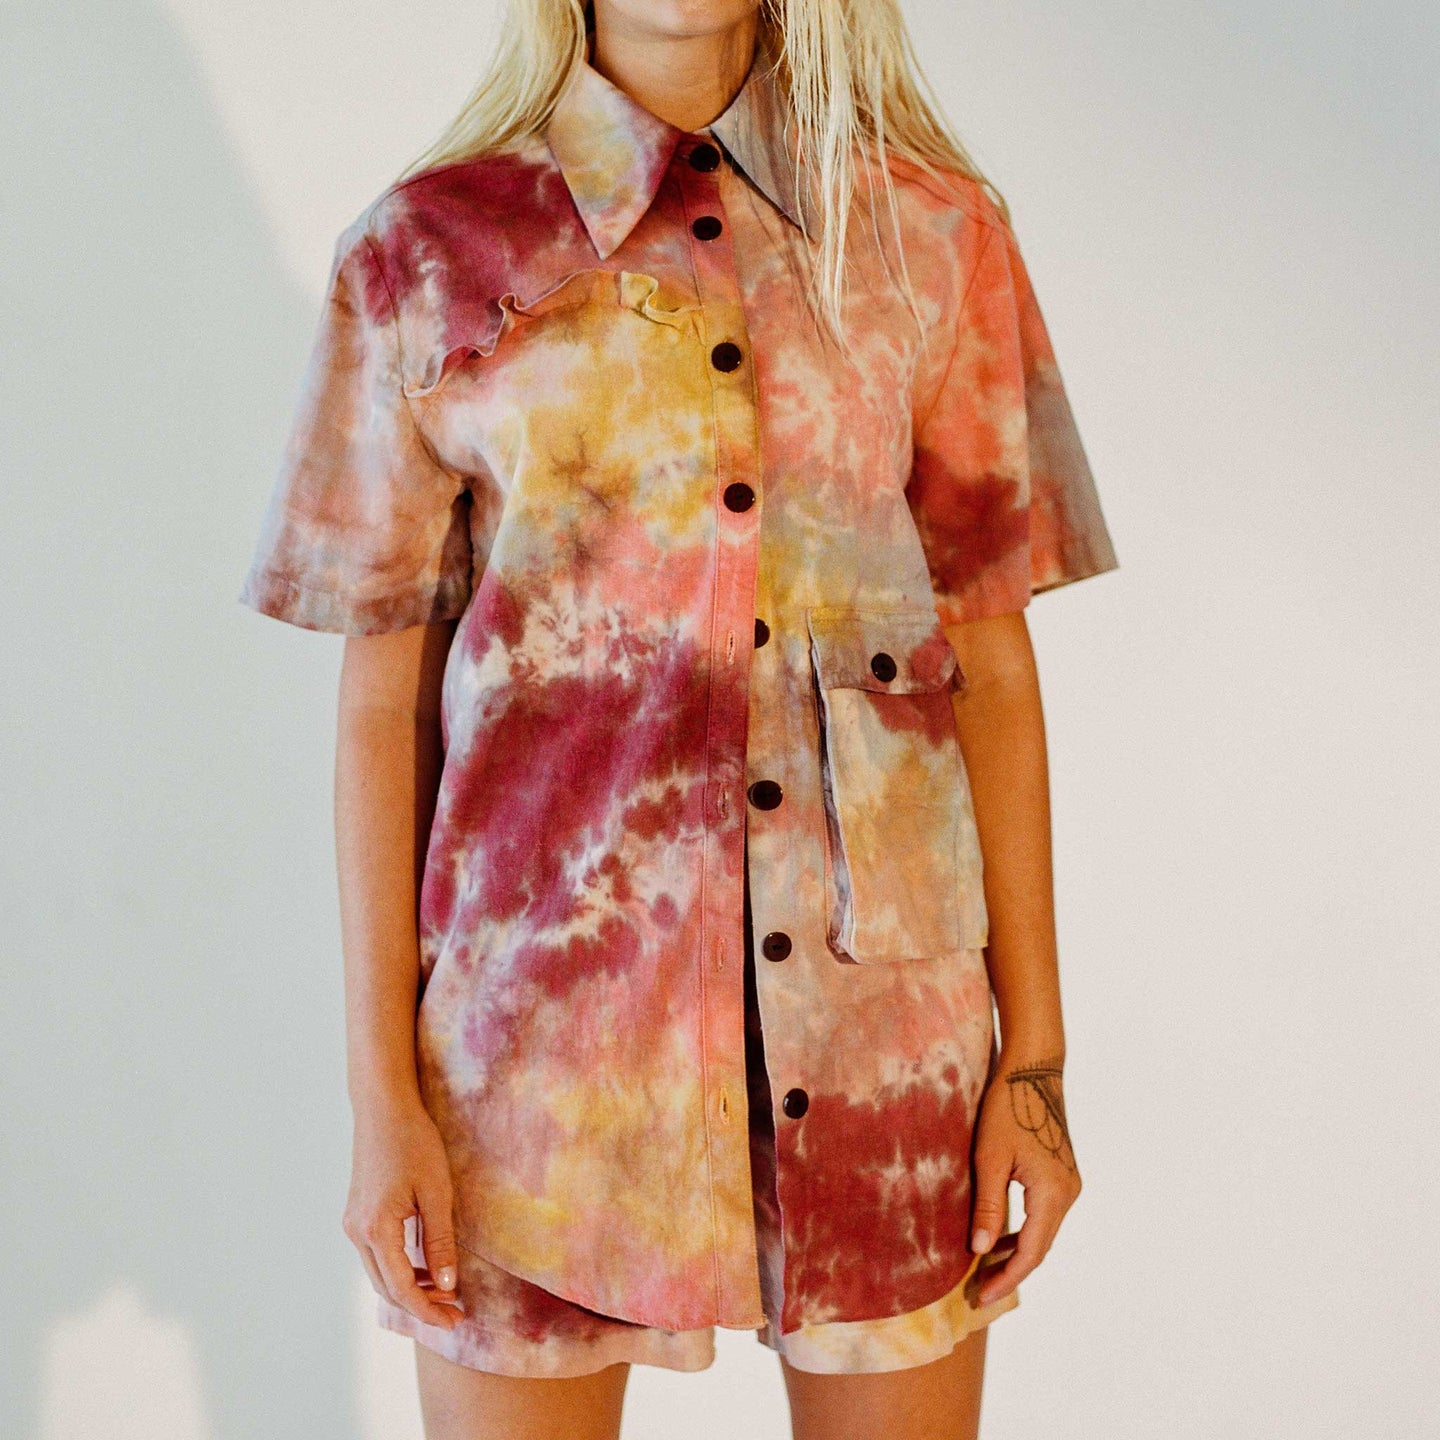 Kkco for LCD - Limestone Shirt in Reef Tie Dye, front view, available at LCD.